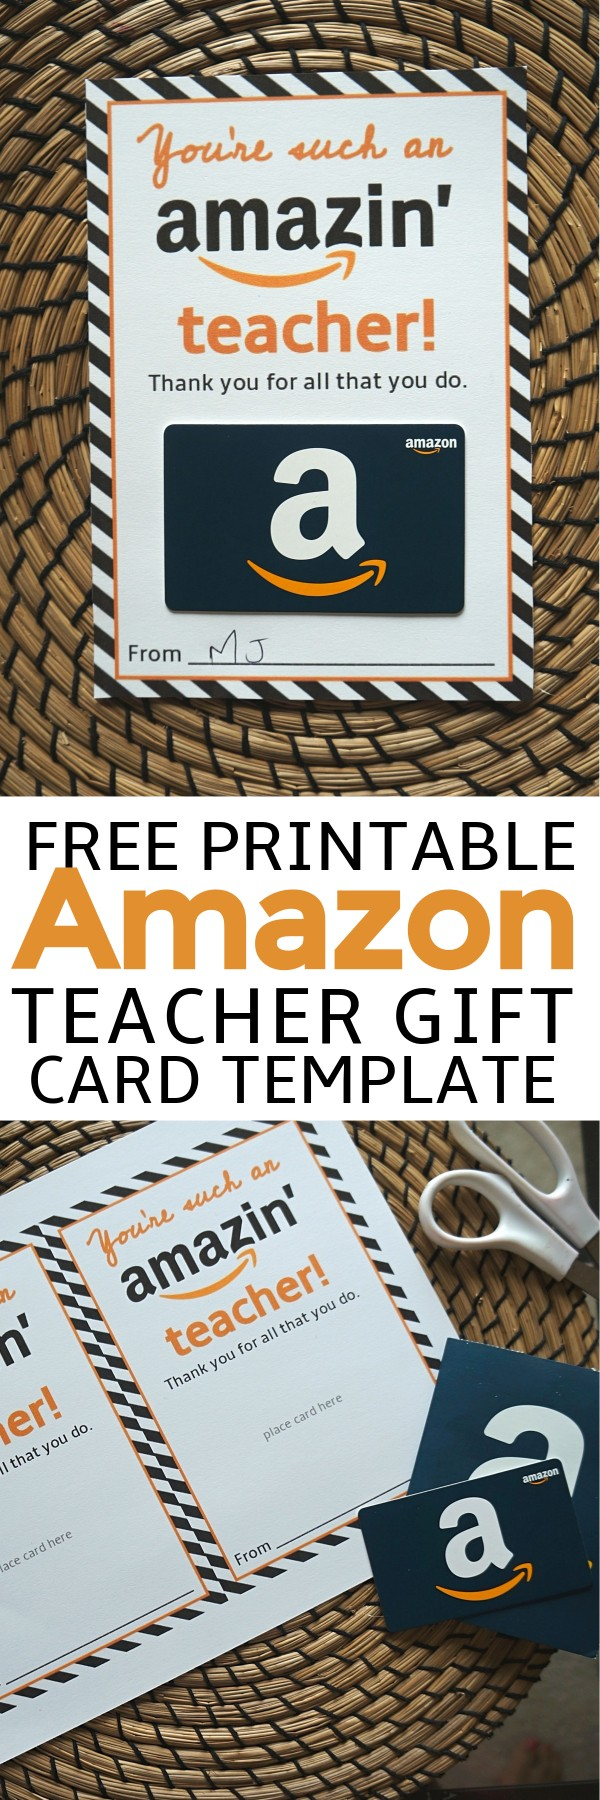 photograph relating to Amazon Gift Card Printable named Totally free Amazon Trainer Reward Card Printable Template - Deliver Reward